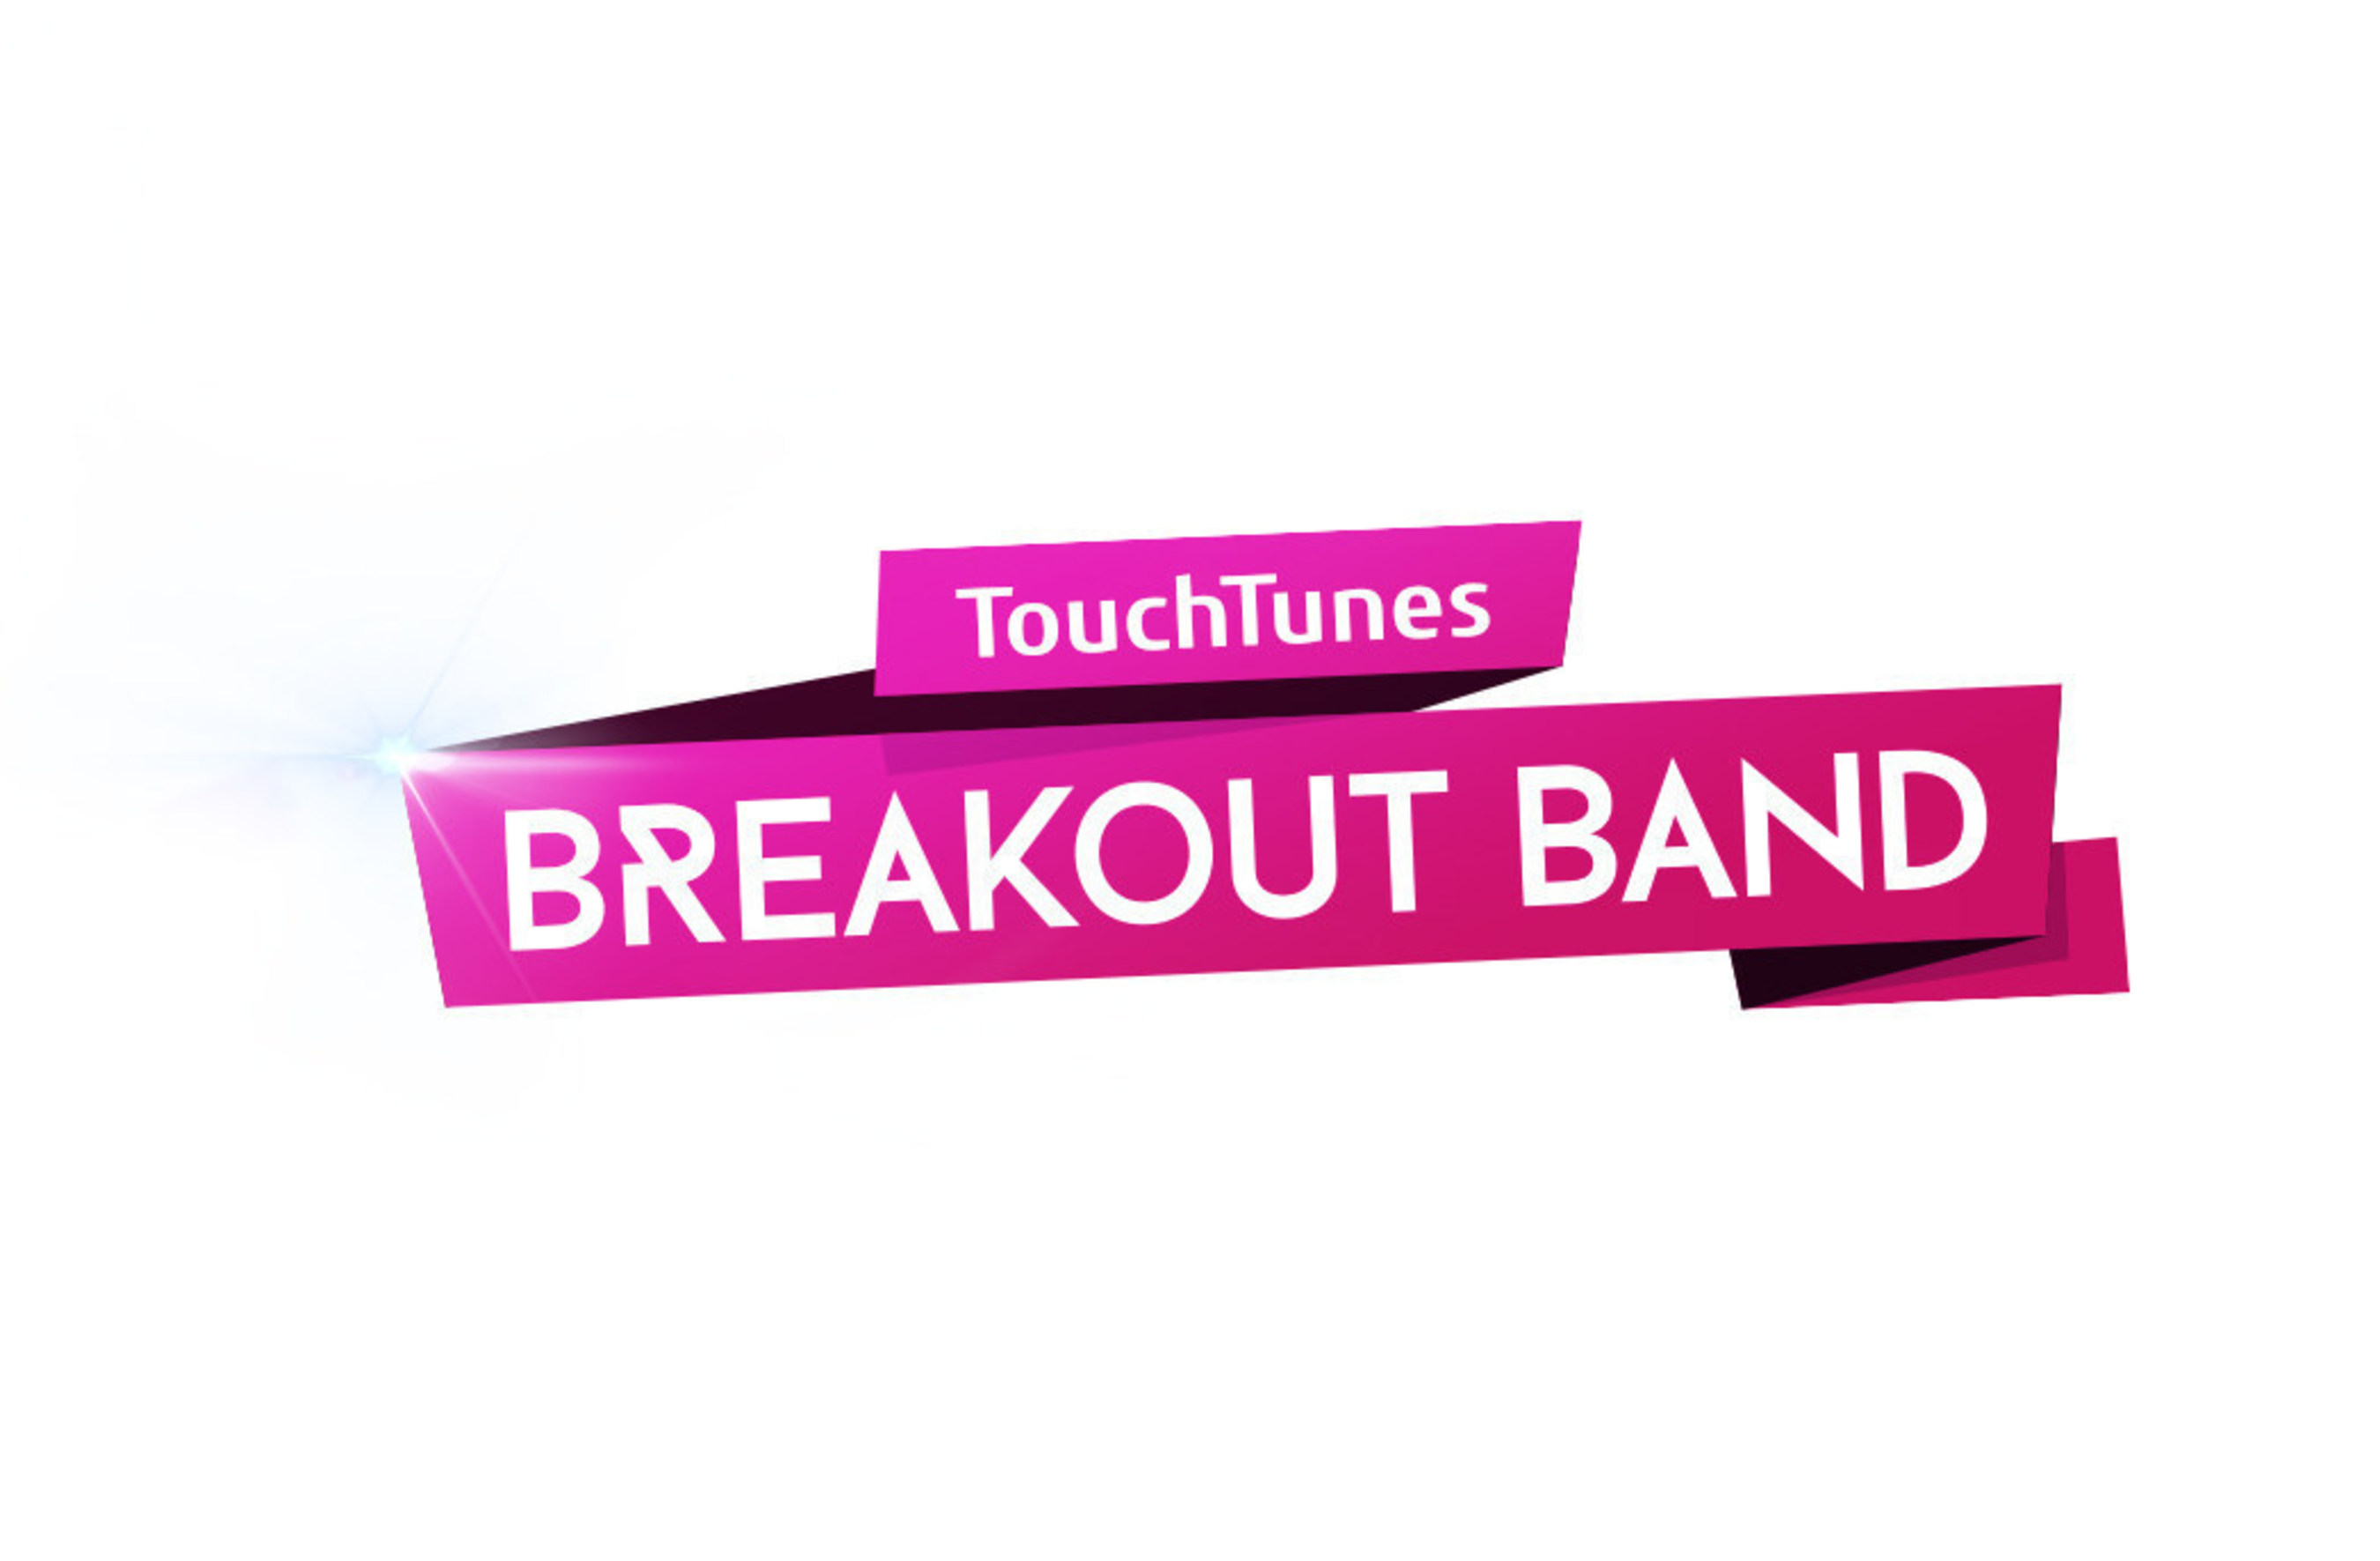 TouchTunes is searching for America's next Breakout Band. Win an audition with Warner Bros. Records A&R.